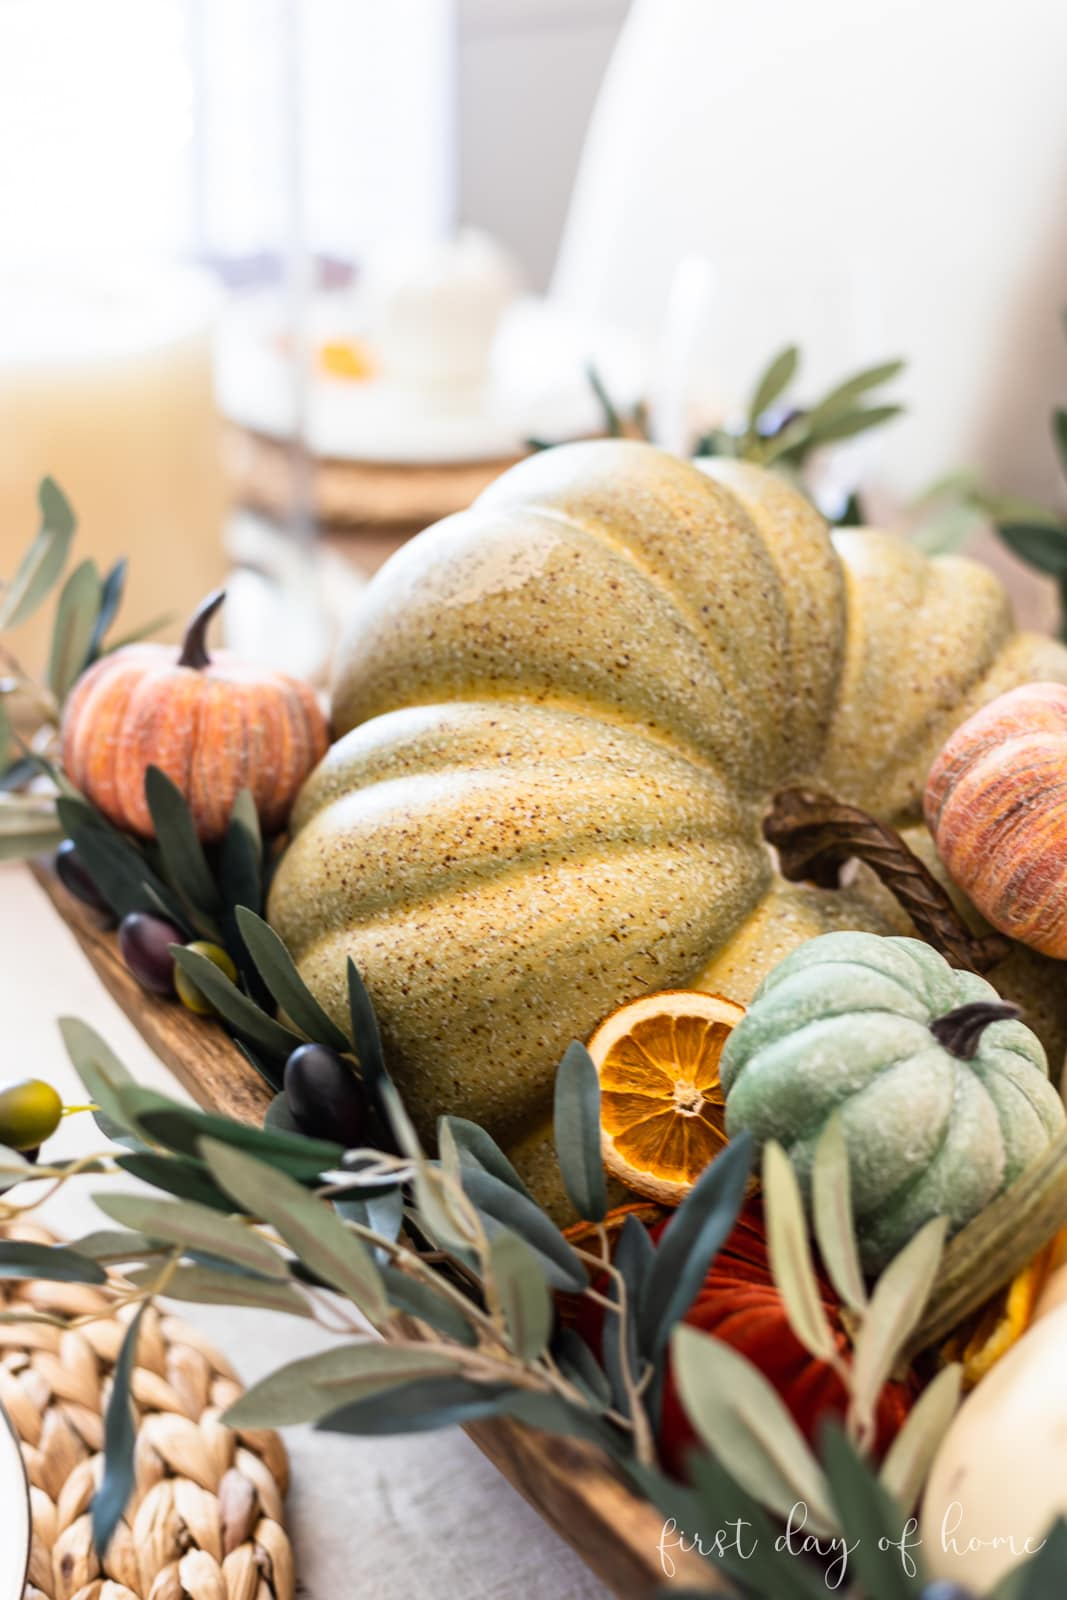 Fall dough bowl centerpiece with faux pumpkins, dried orange slices, and greenery